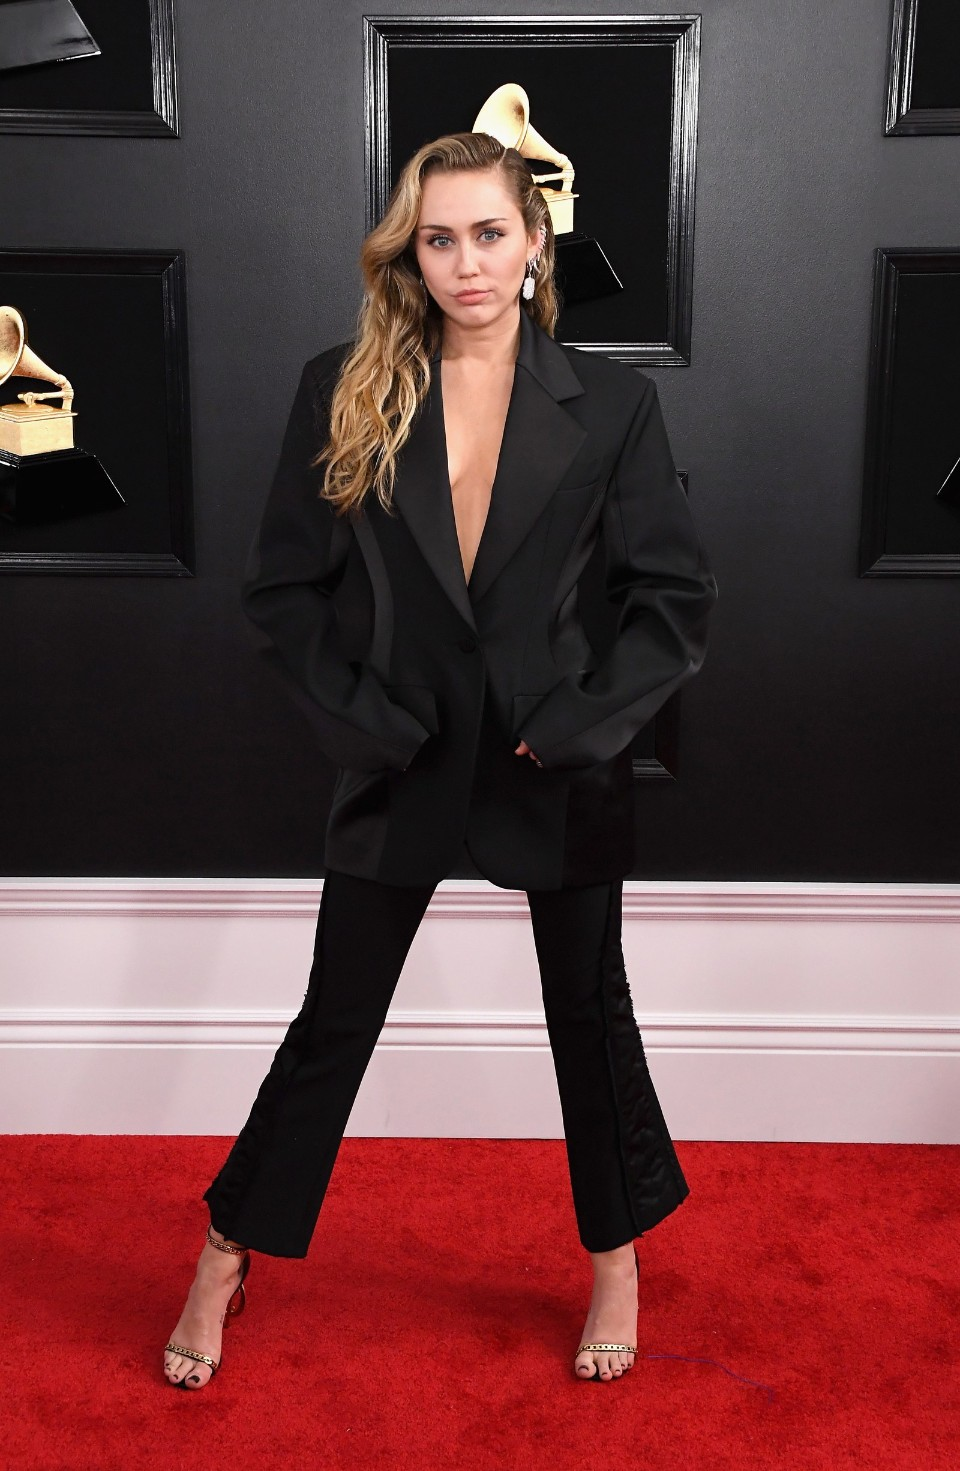 miley cyrus grammy's 2019 fashion red carpet